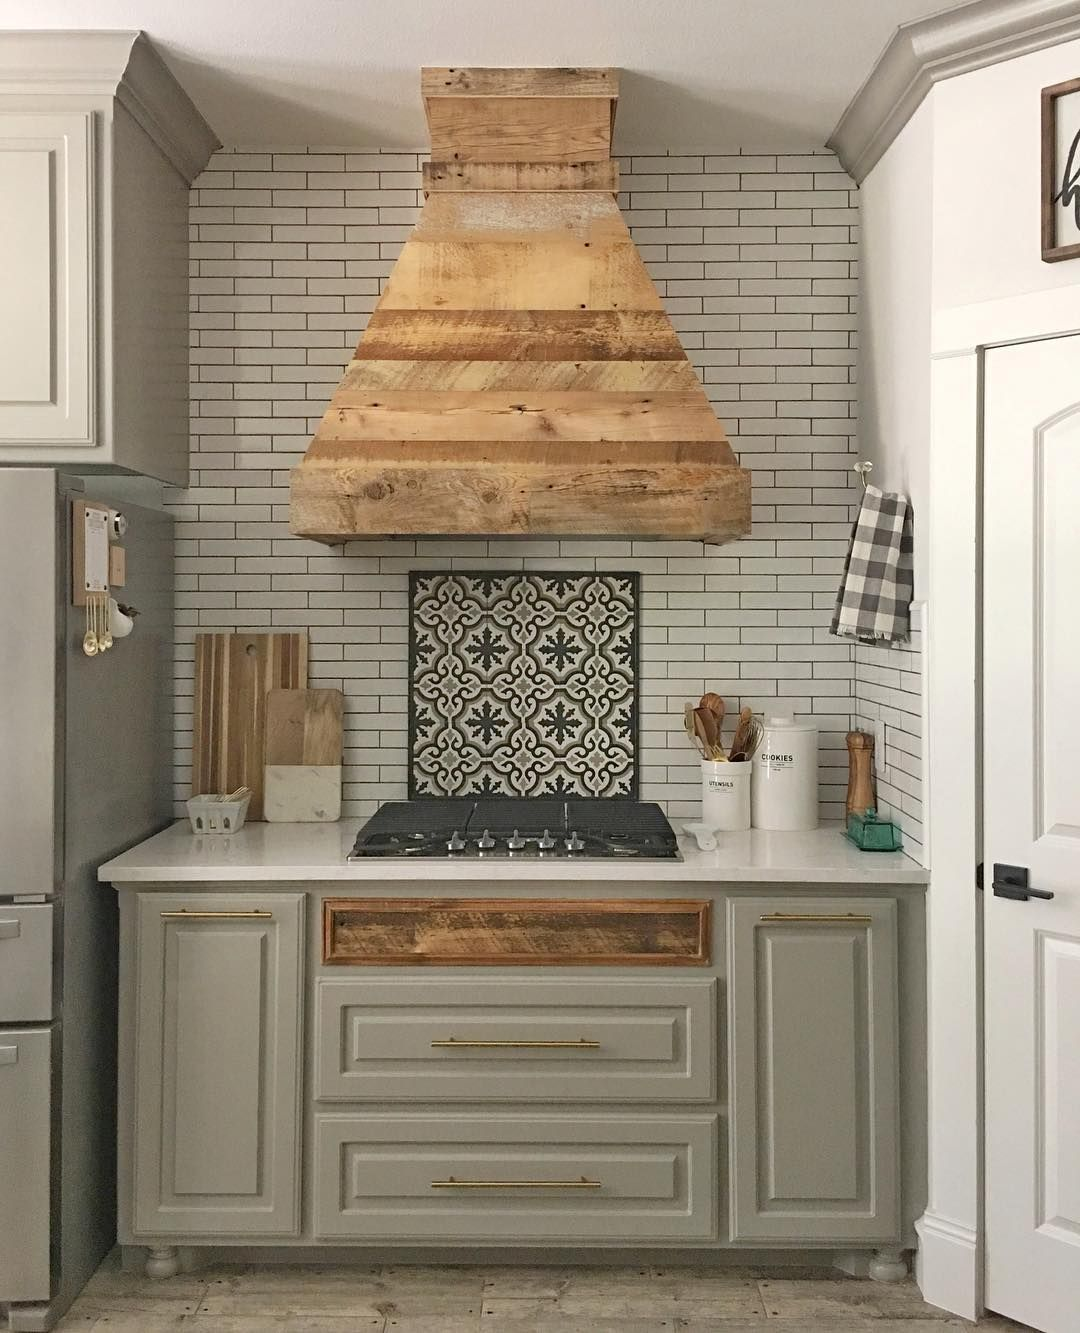 One Of My Favorite Builds Yet... ️ #shanty2chic #kitchen